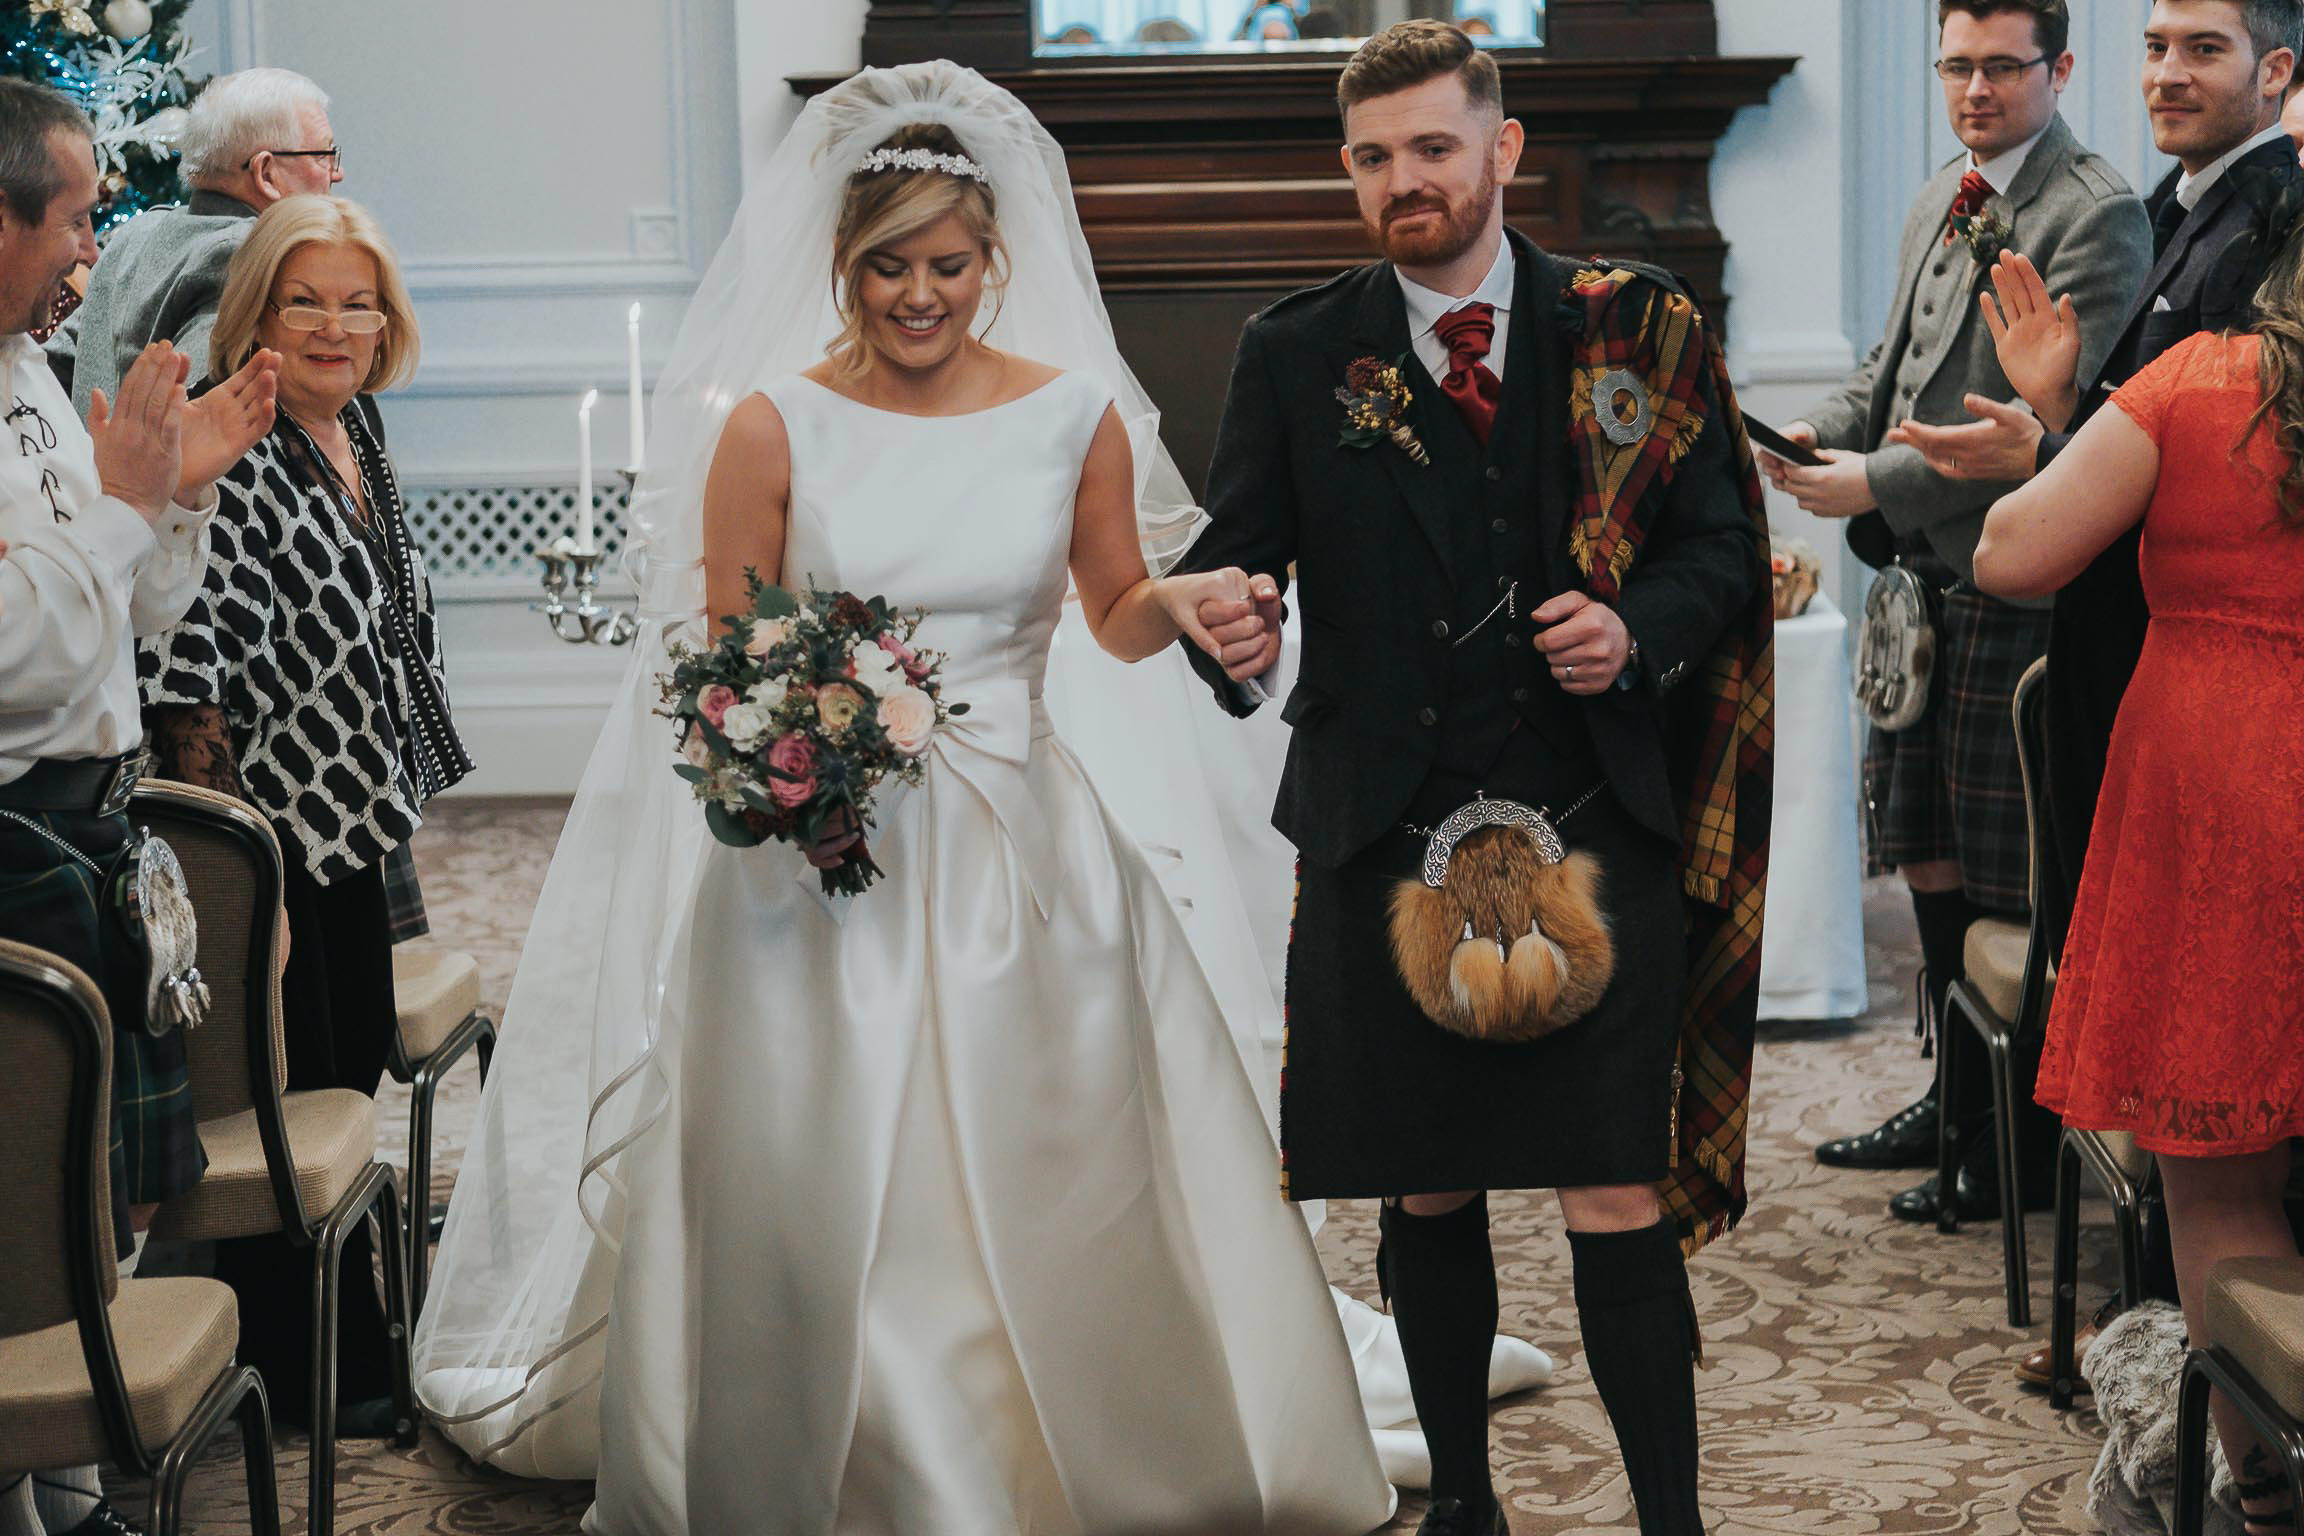 bride and groom walking down the aisle after becoming man and wife